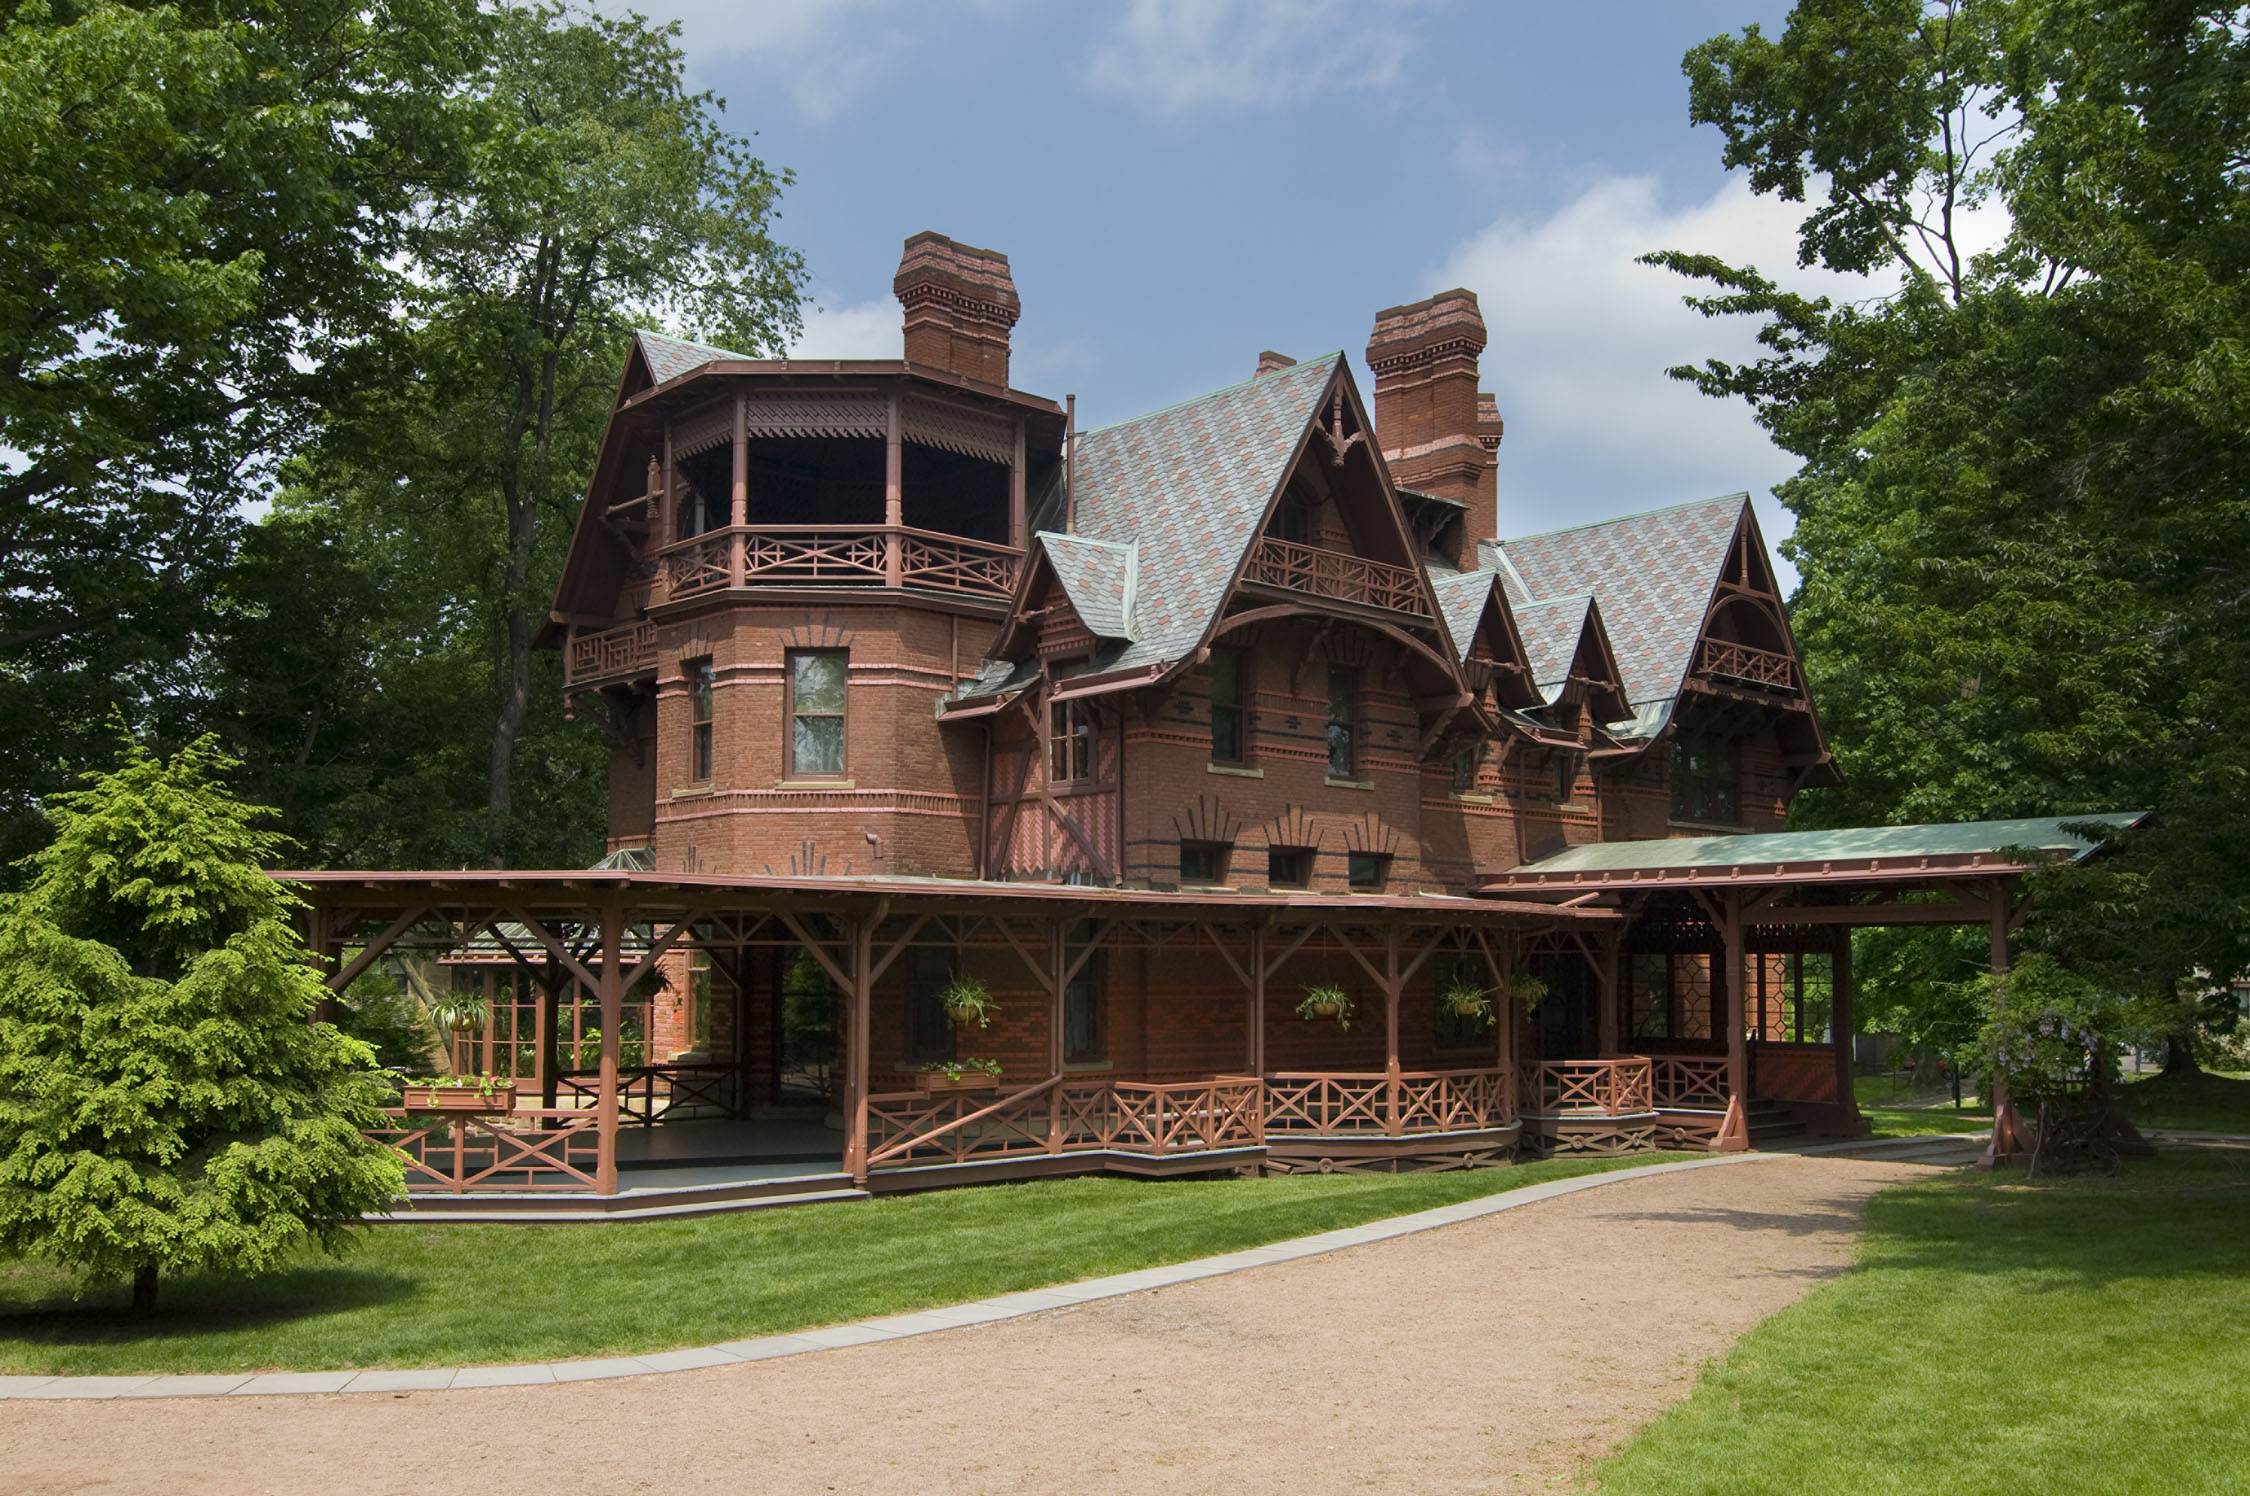 The Mark Twain House located in Hartford, CT, home of Samuel Clemens from 1874-1891